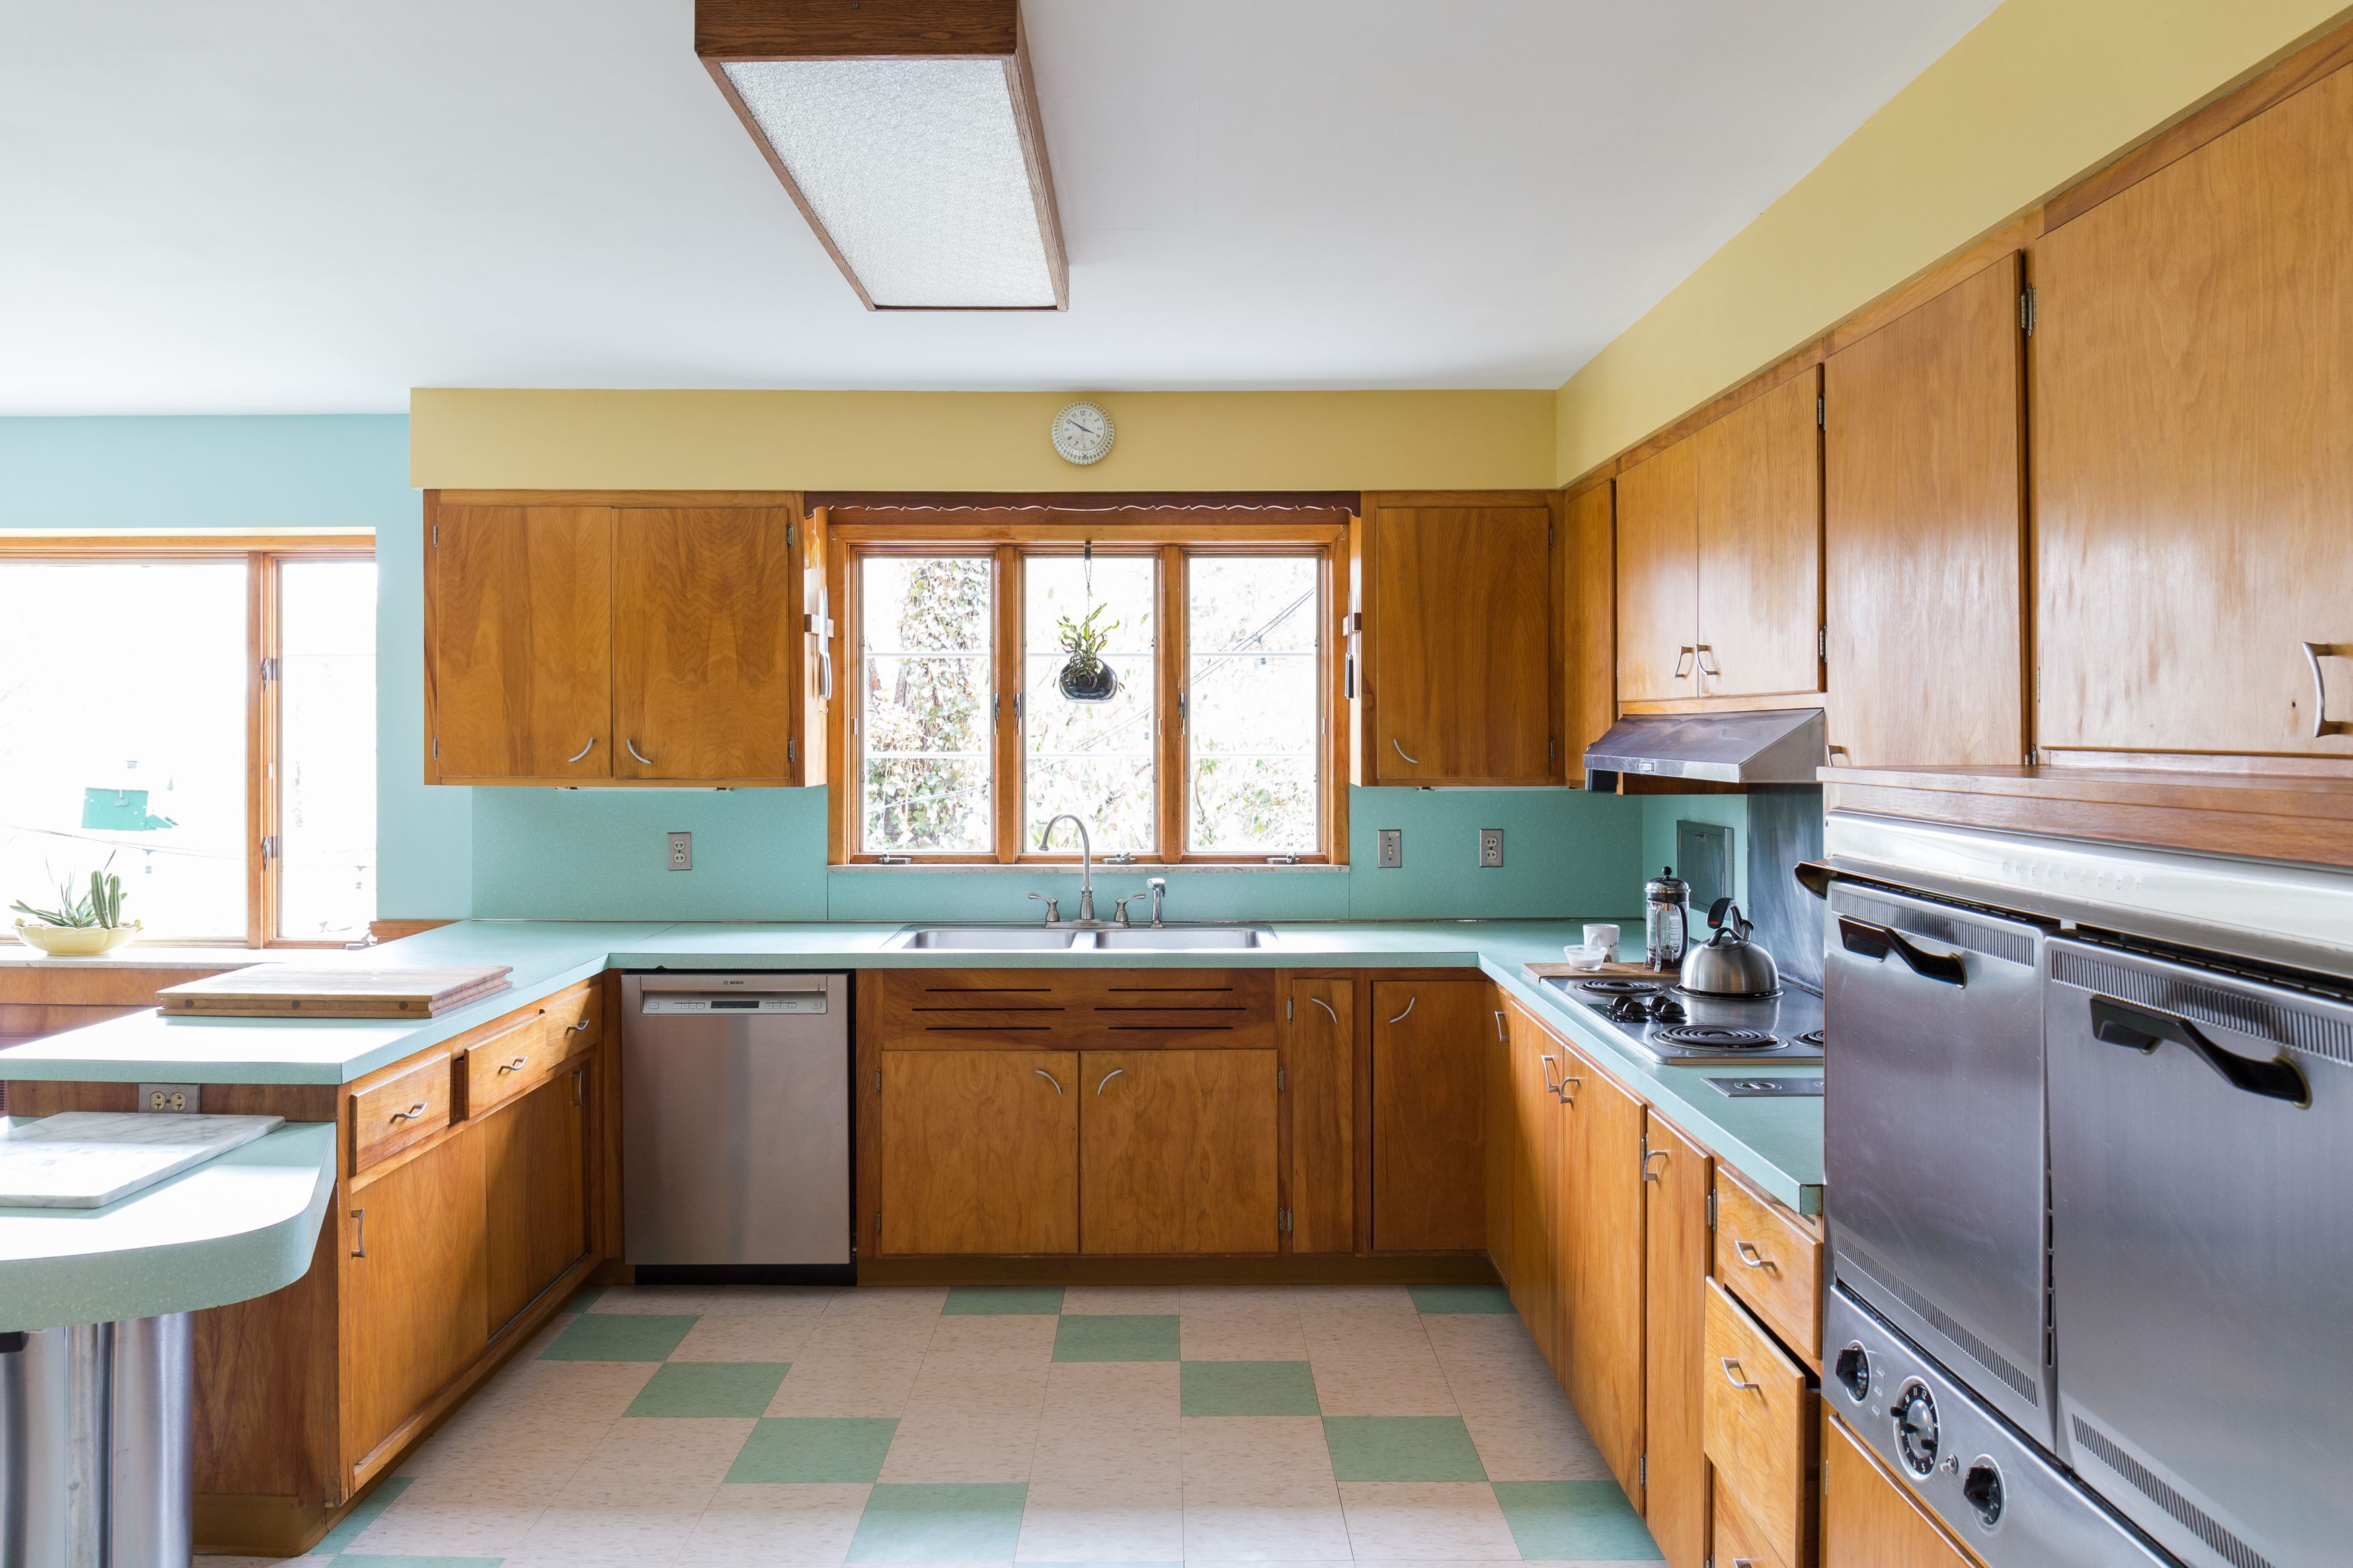 House Tour A Restored Mid Century Home In Rhode Island Apartment Therapy Mid Century Modern Kitchen Mid Century House Mid Century Kitchen